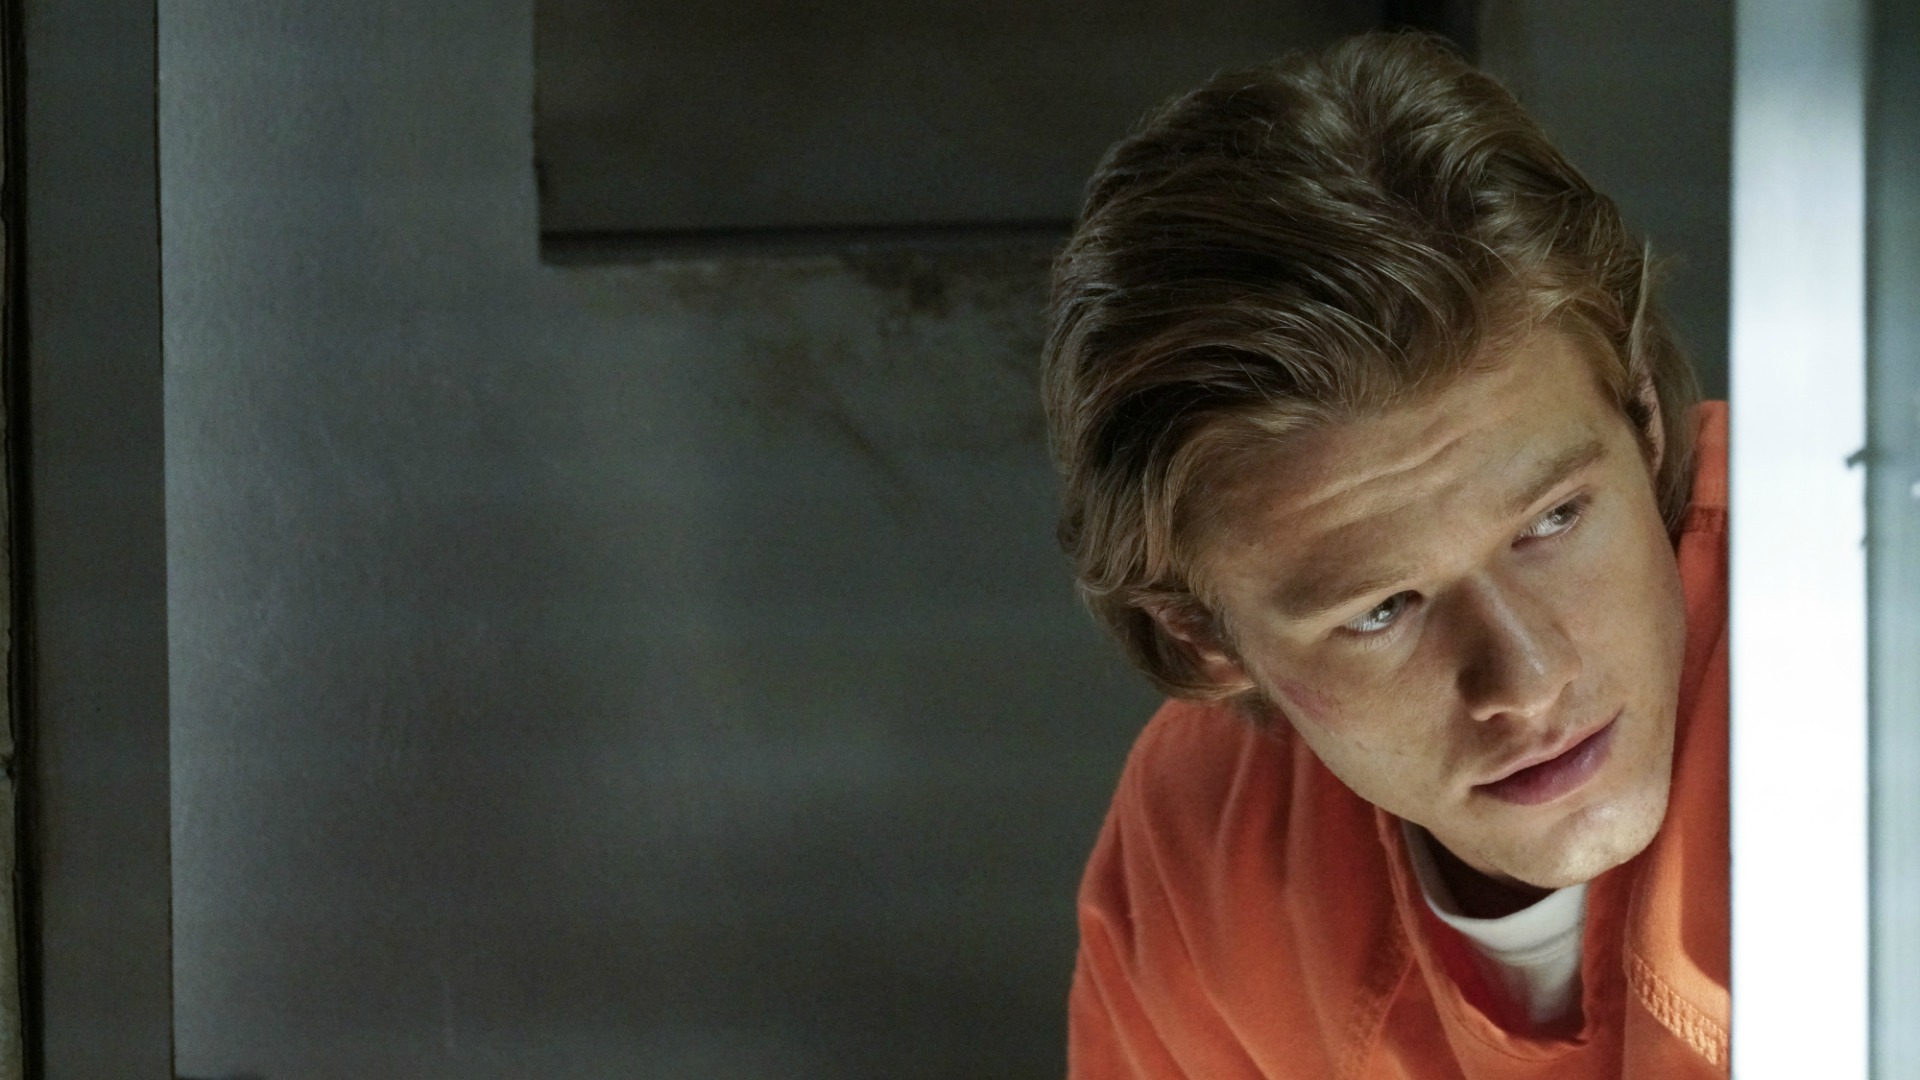 MacGyver looks out from his jail cell.